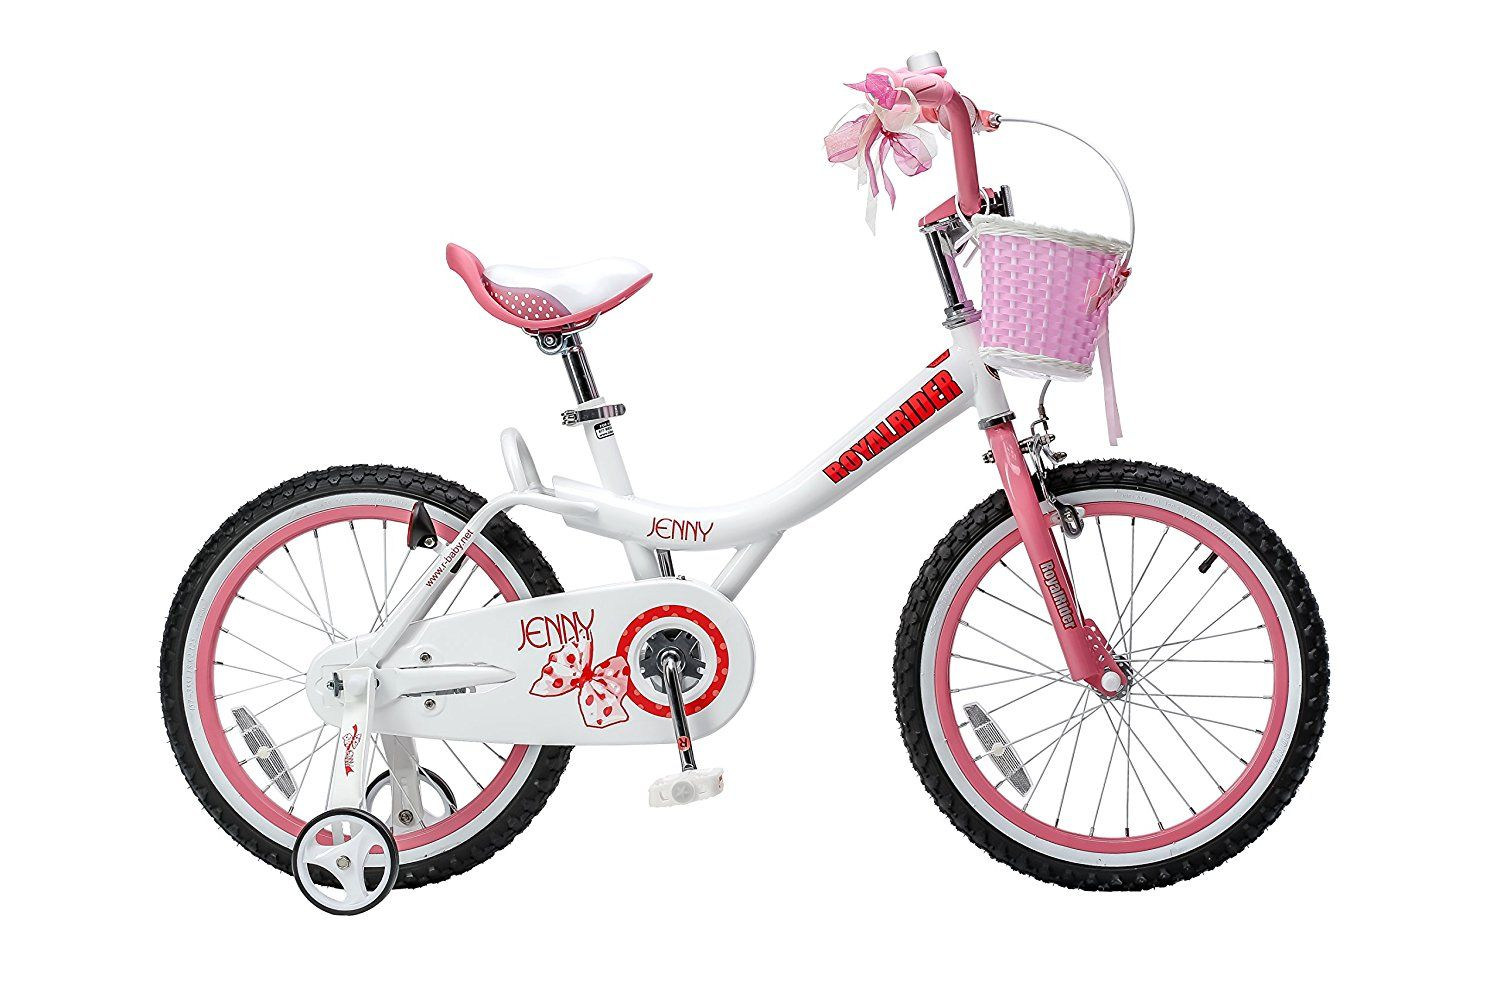 66f2f477ae0 Royalbaby Jenny Princess Pink Girl's Bike with Training Wheels and Basket  Perfect Gift for Kids 18